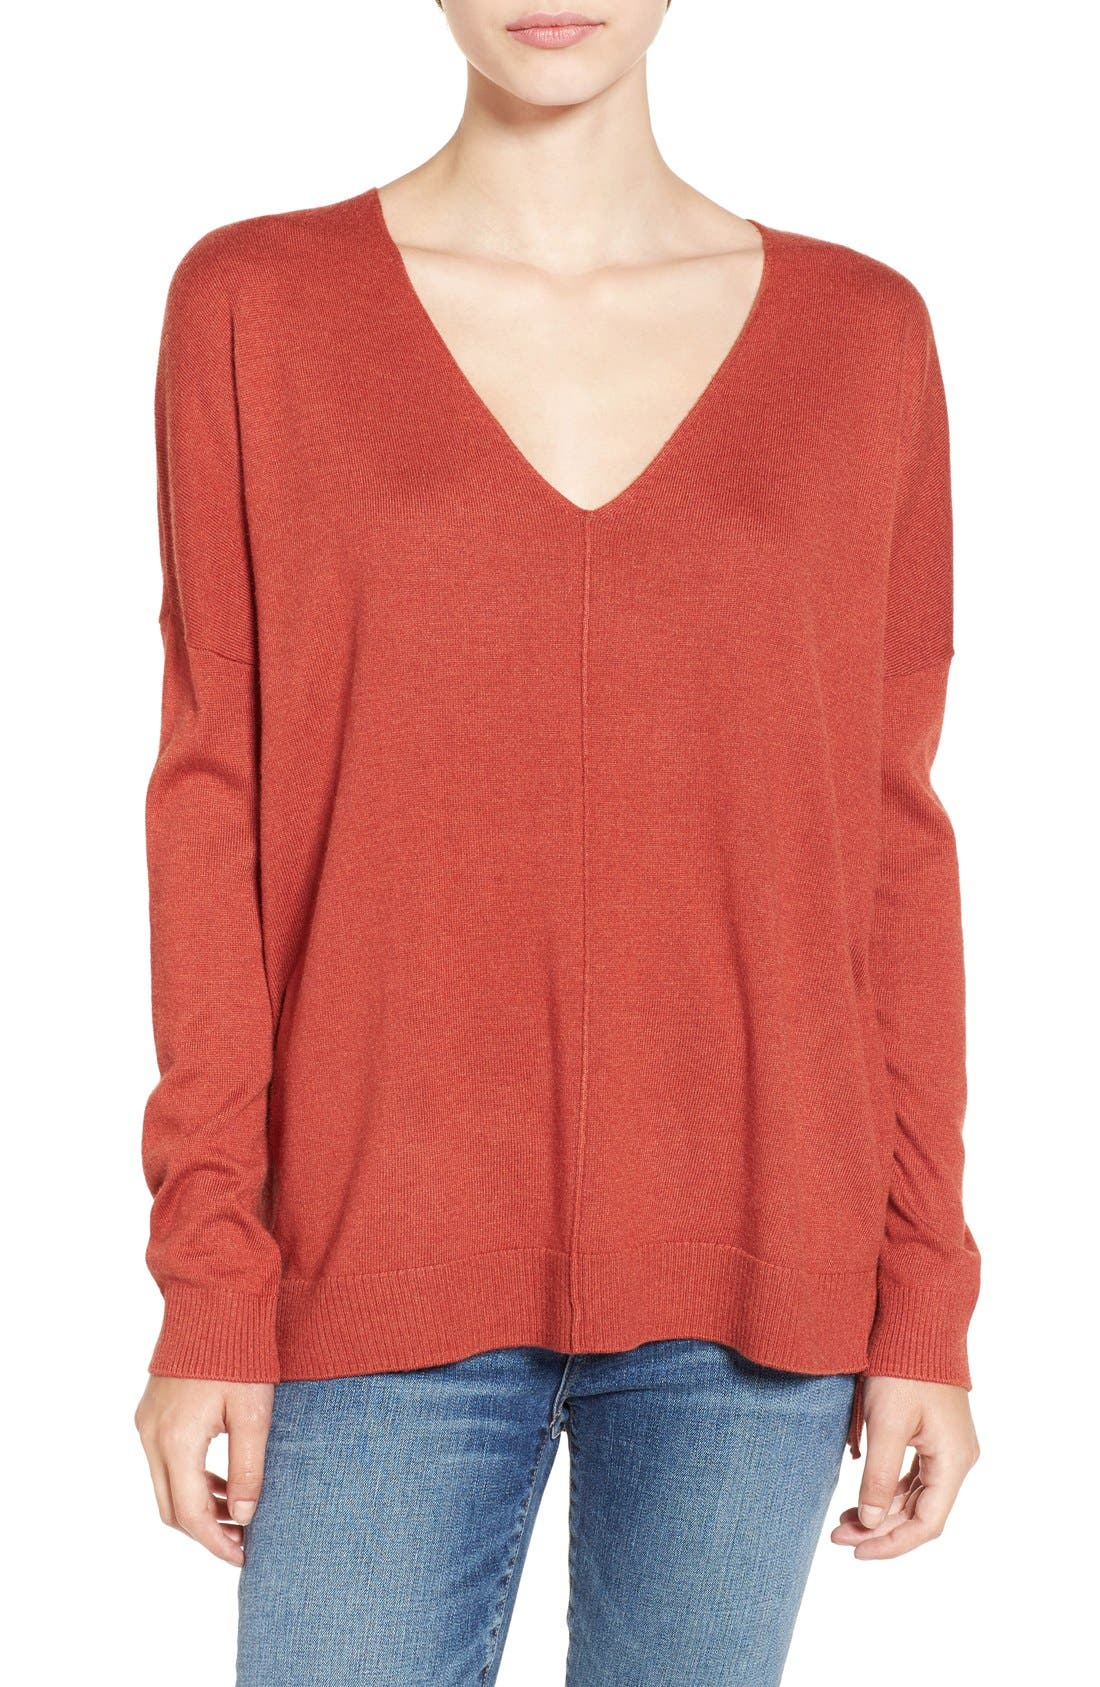 Alternate Image 1 Selected - Leith V-Neck Sweater